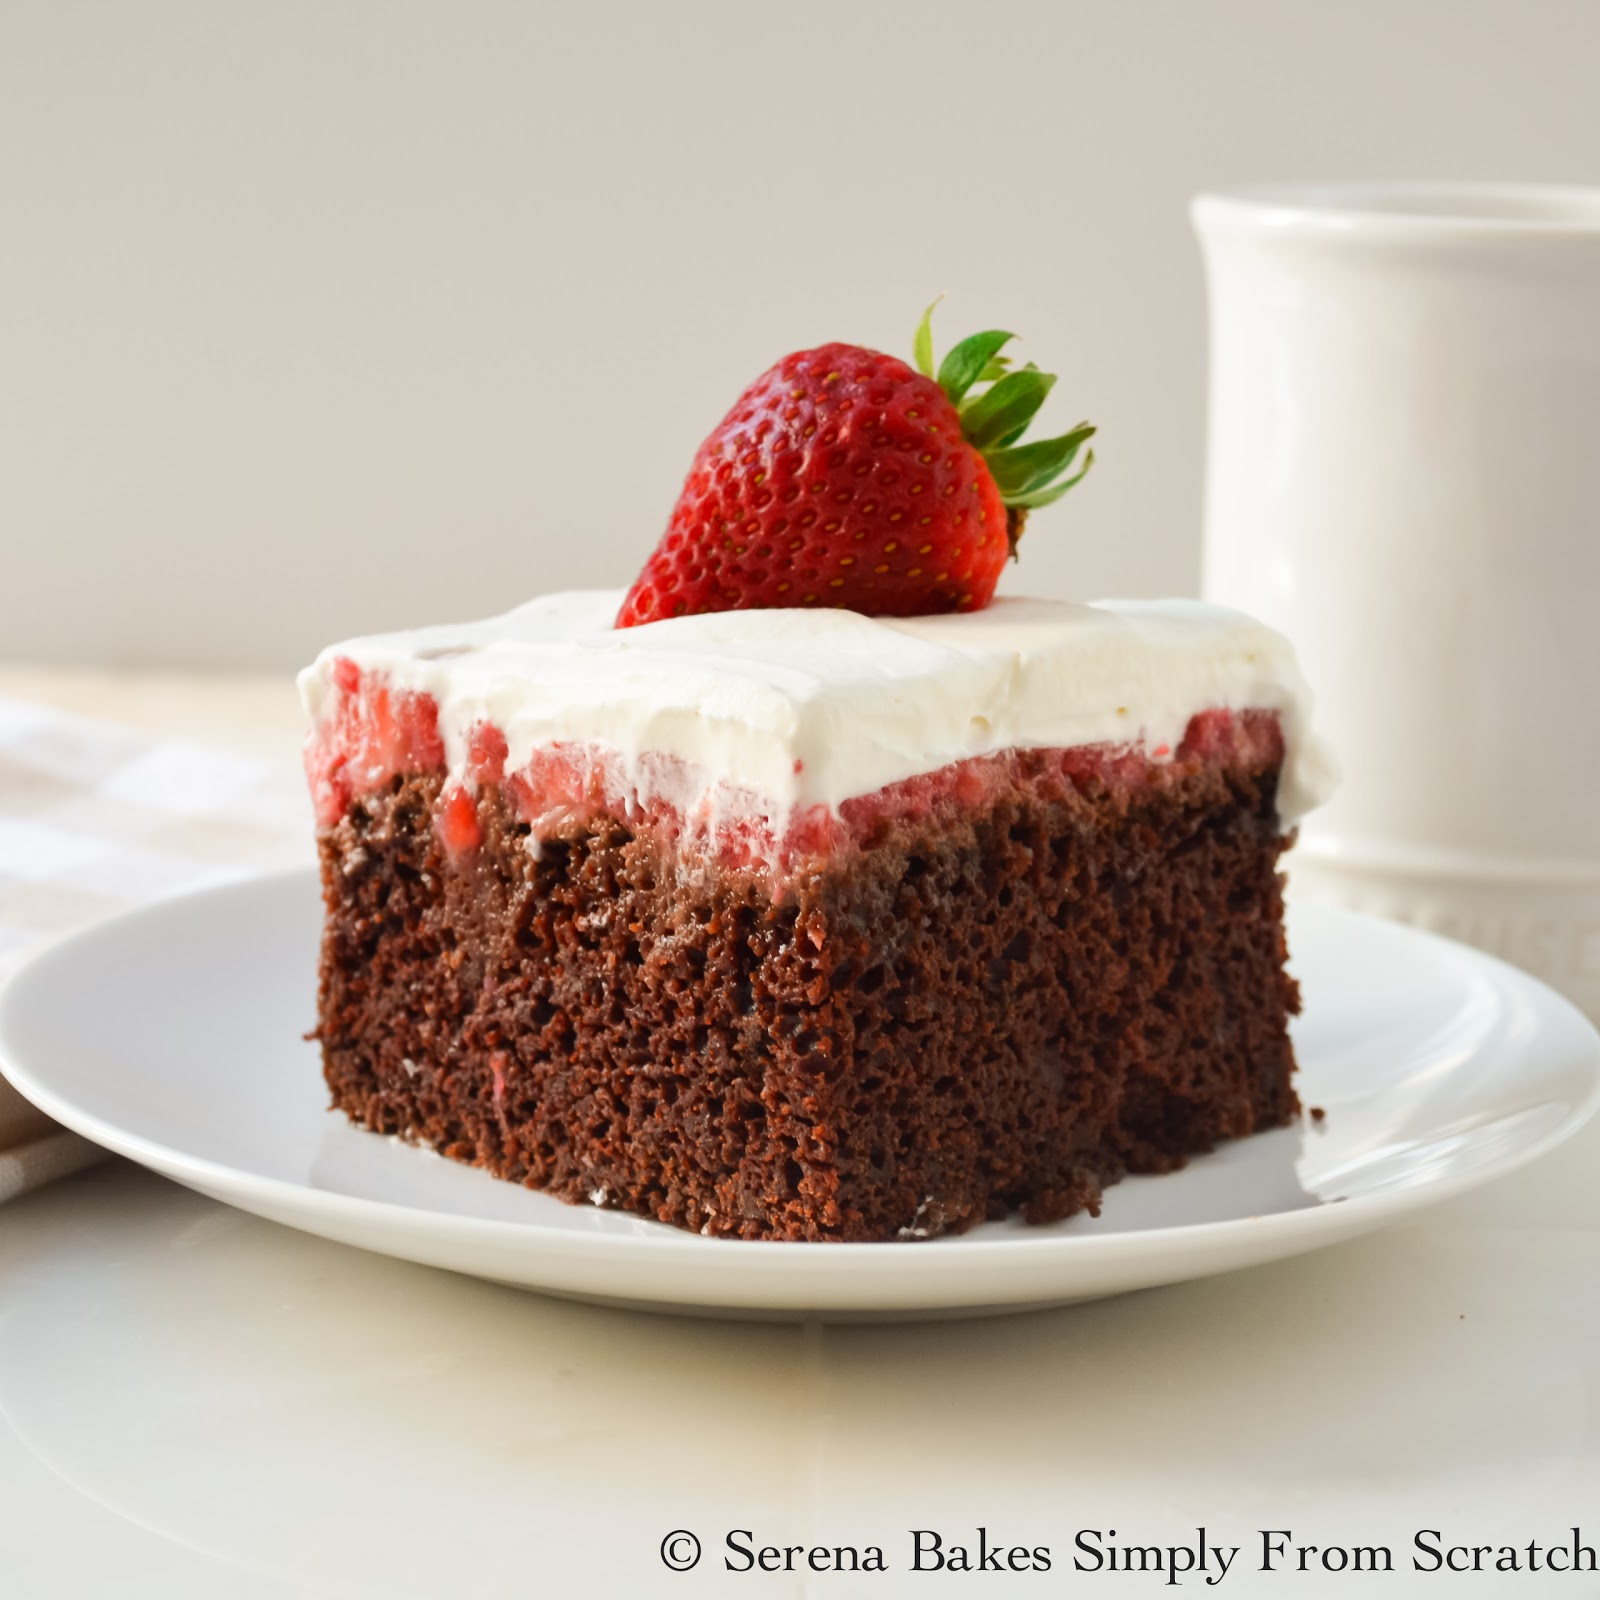 Chocolate Strawberry Poke Cake - Serena Bakes Simply From Scratch